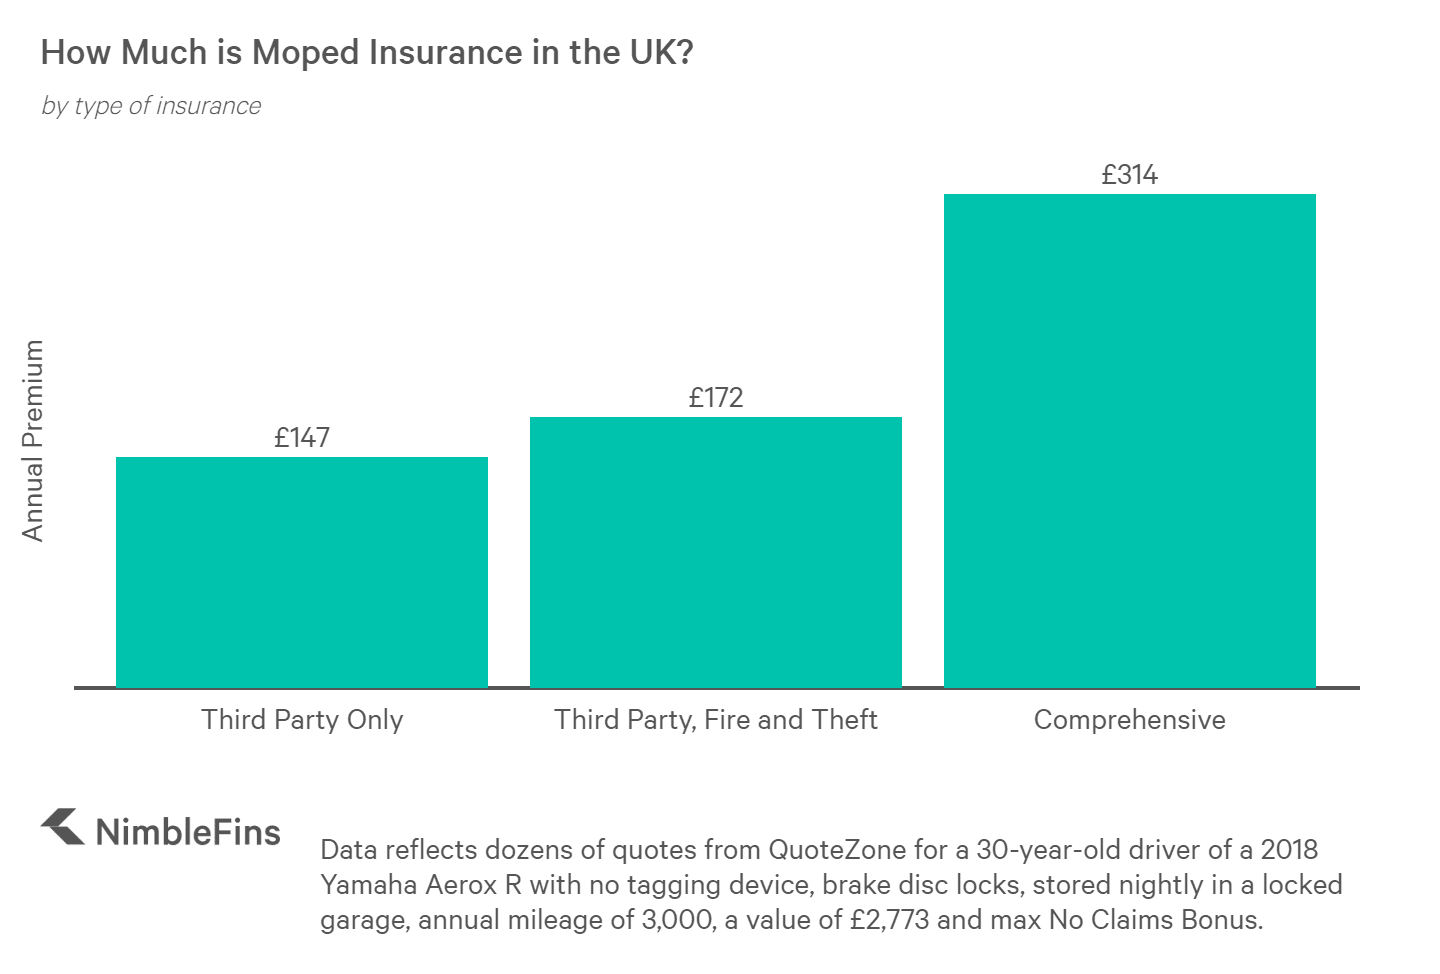 Chart showing the average cost of UK moped insurance for Comprehensive, TPFT and Third Party only for a new Yamaha Aerox